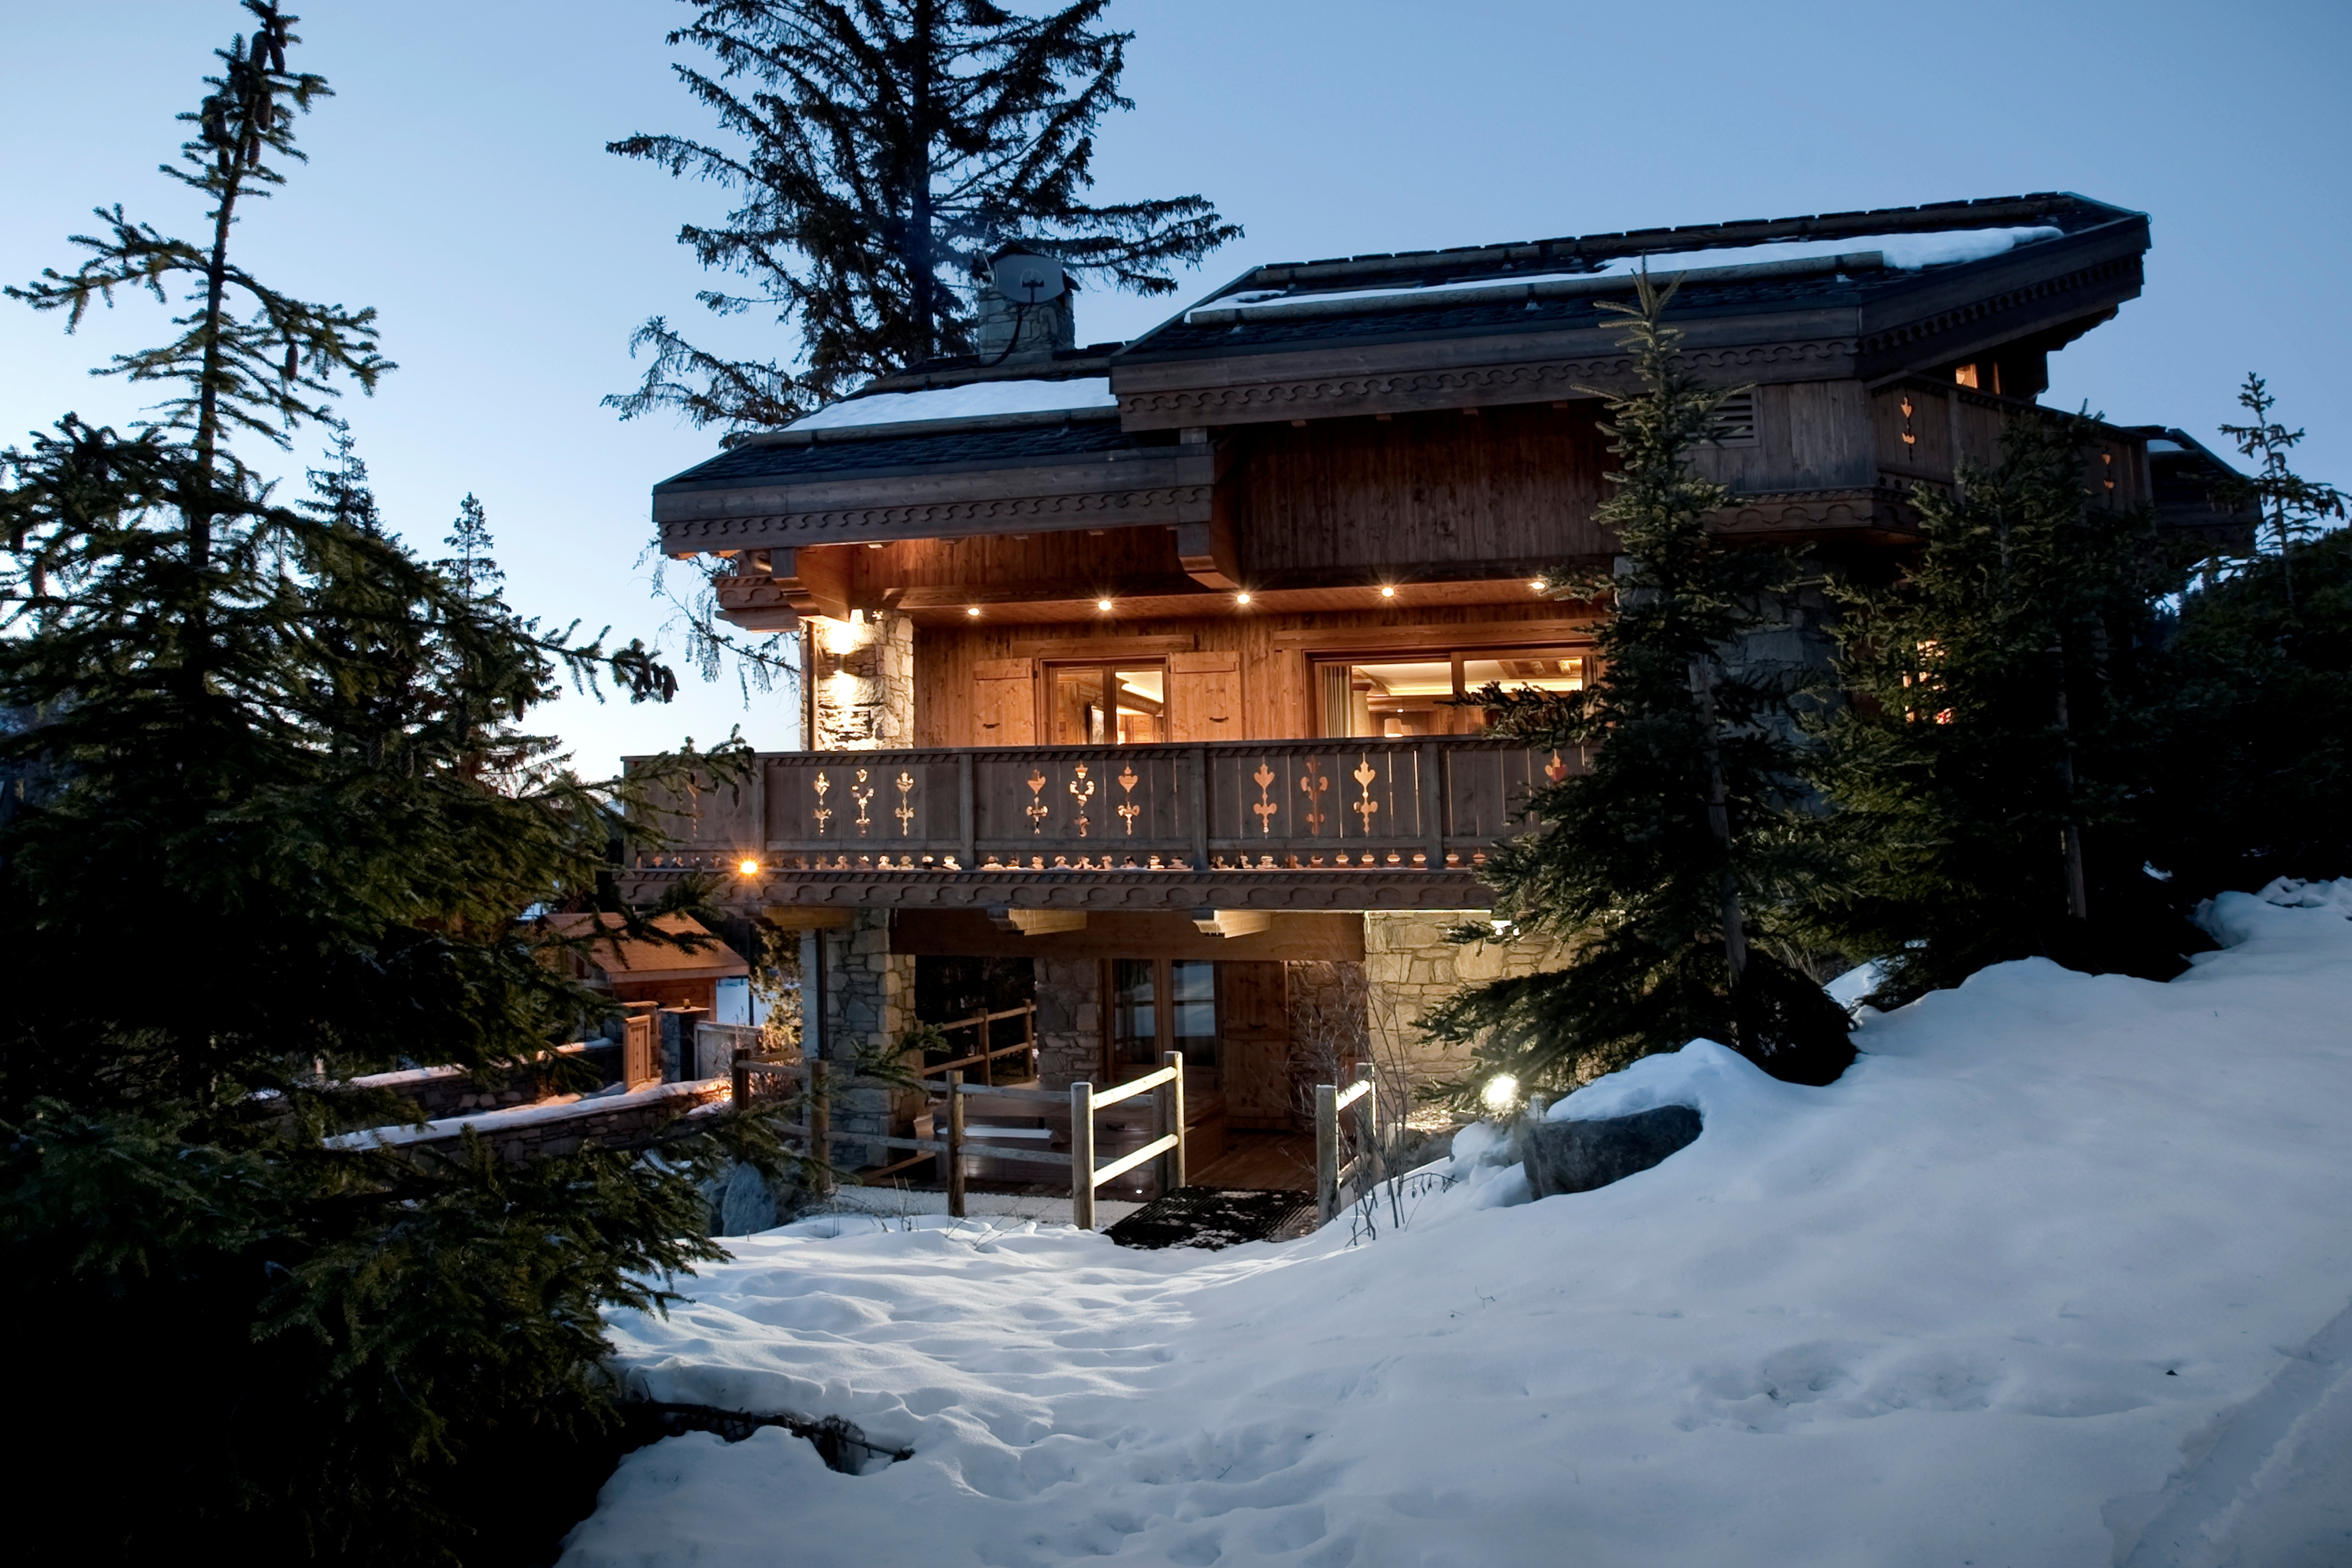 Ski in ski out chalets in Meribel - the Chalet Trois Ours